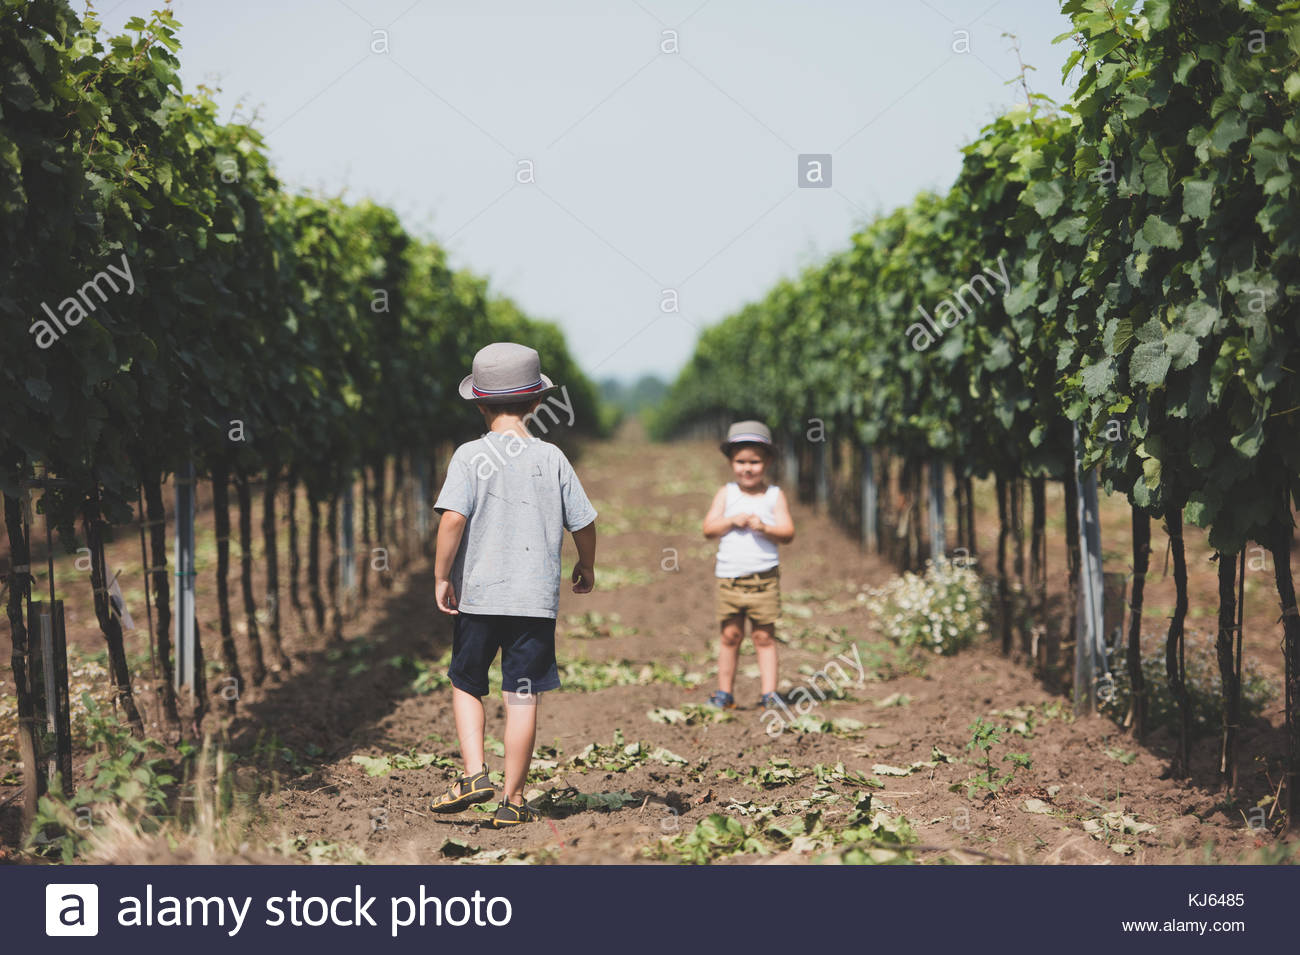 Children from vines on land - Stock Image